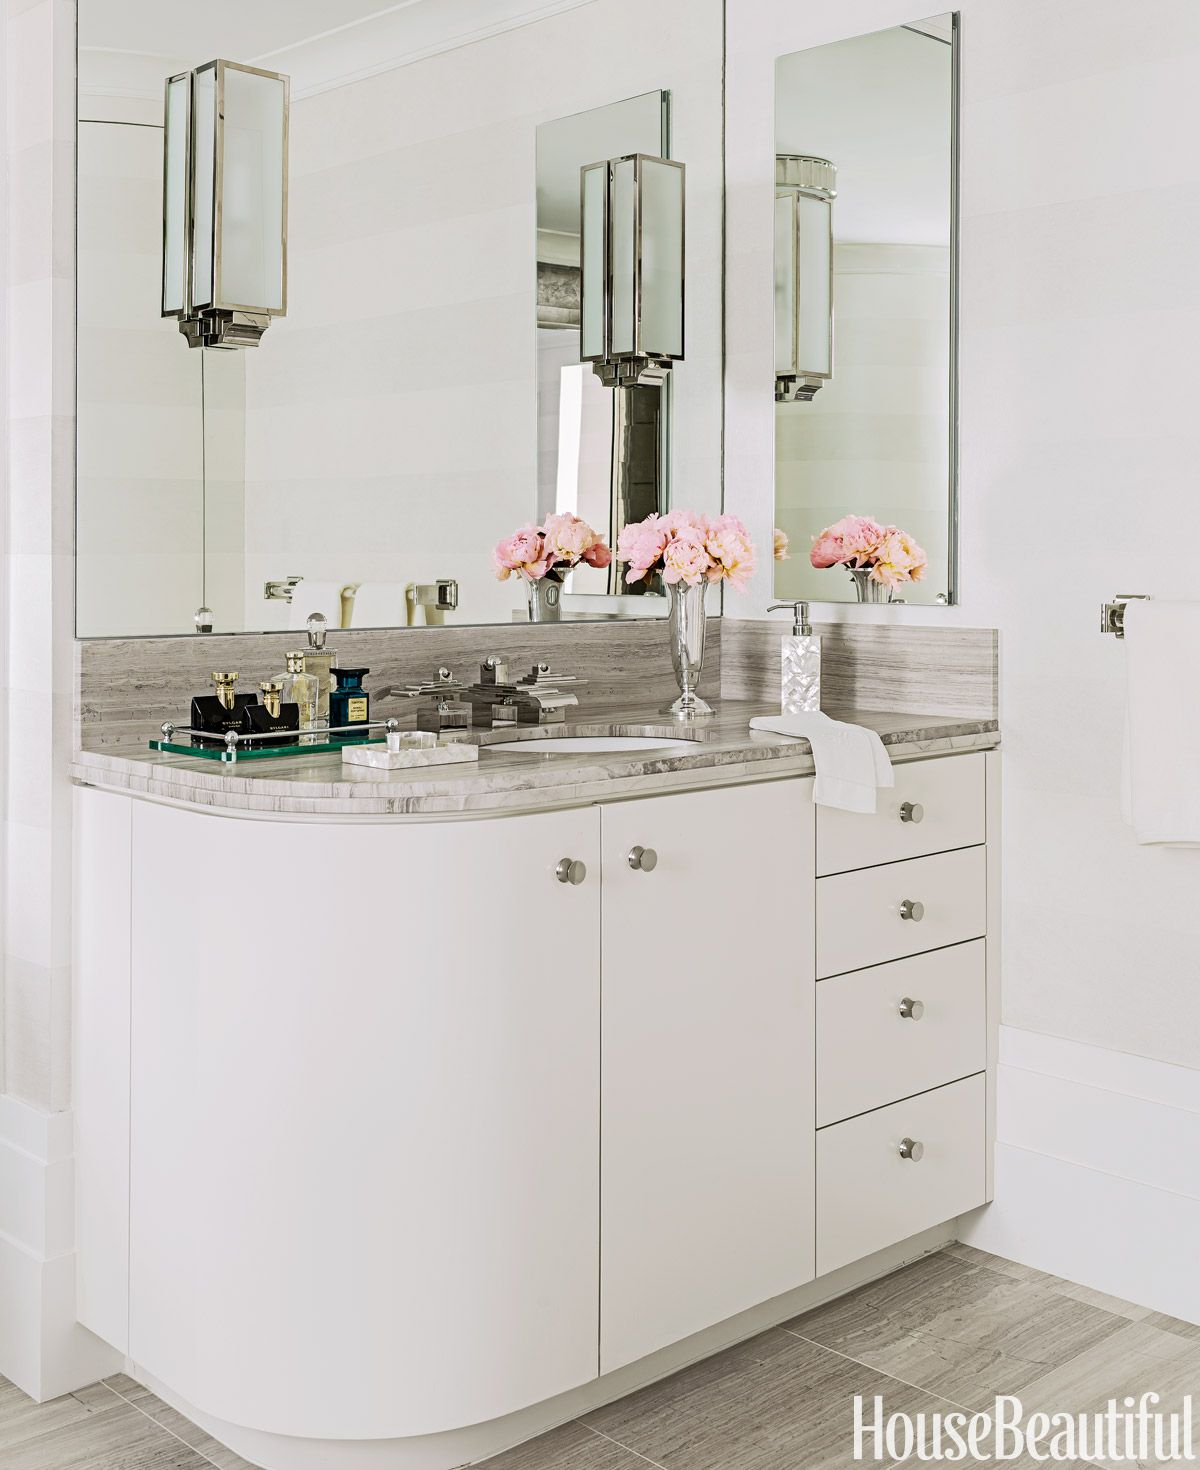 Remodeling Ideas For Small Bathrooms 30 Small Bathroom Design Ideas Small Bathroom Solutions